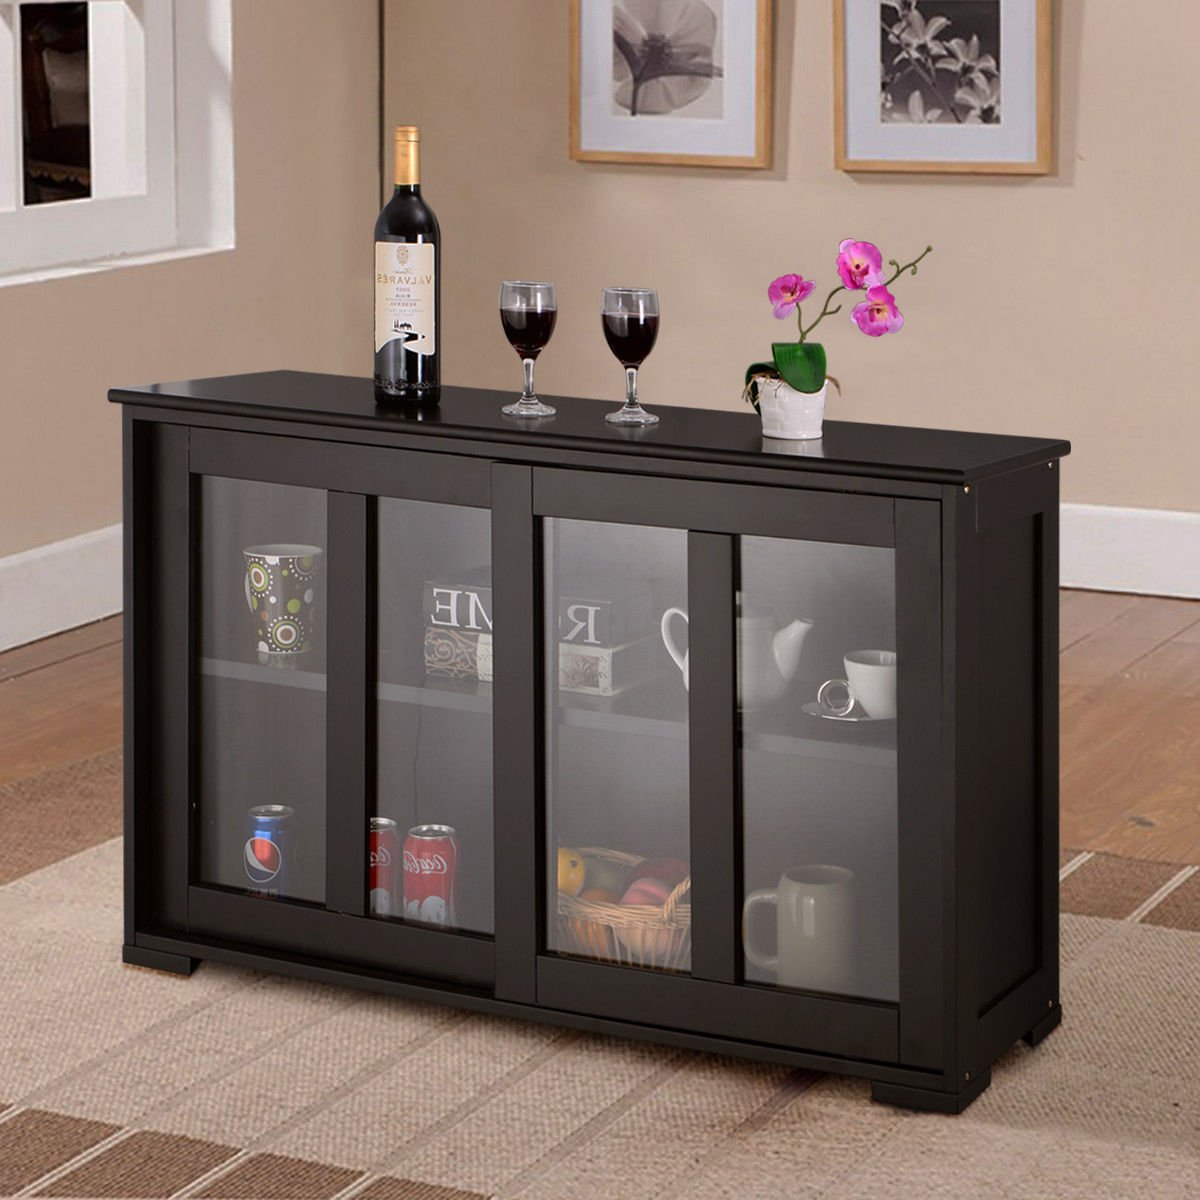 Storage Cabinet Sideboard Buffet Cupboard Glass Sliding Door Pantry Kitchen, Made of Durable Painted Composite Wood & Tempered Glass, A Large Sliding Doors Storage Cabinet with Two Shelves Inside It